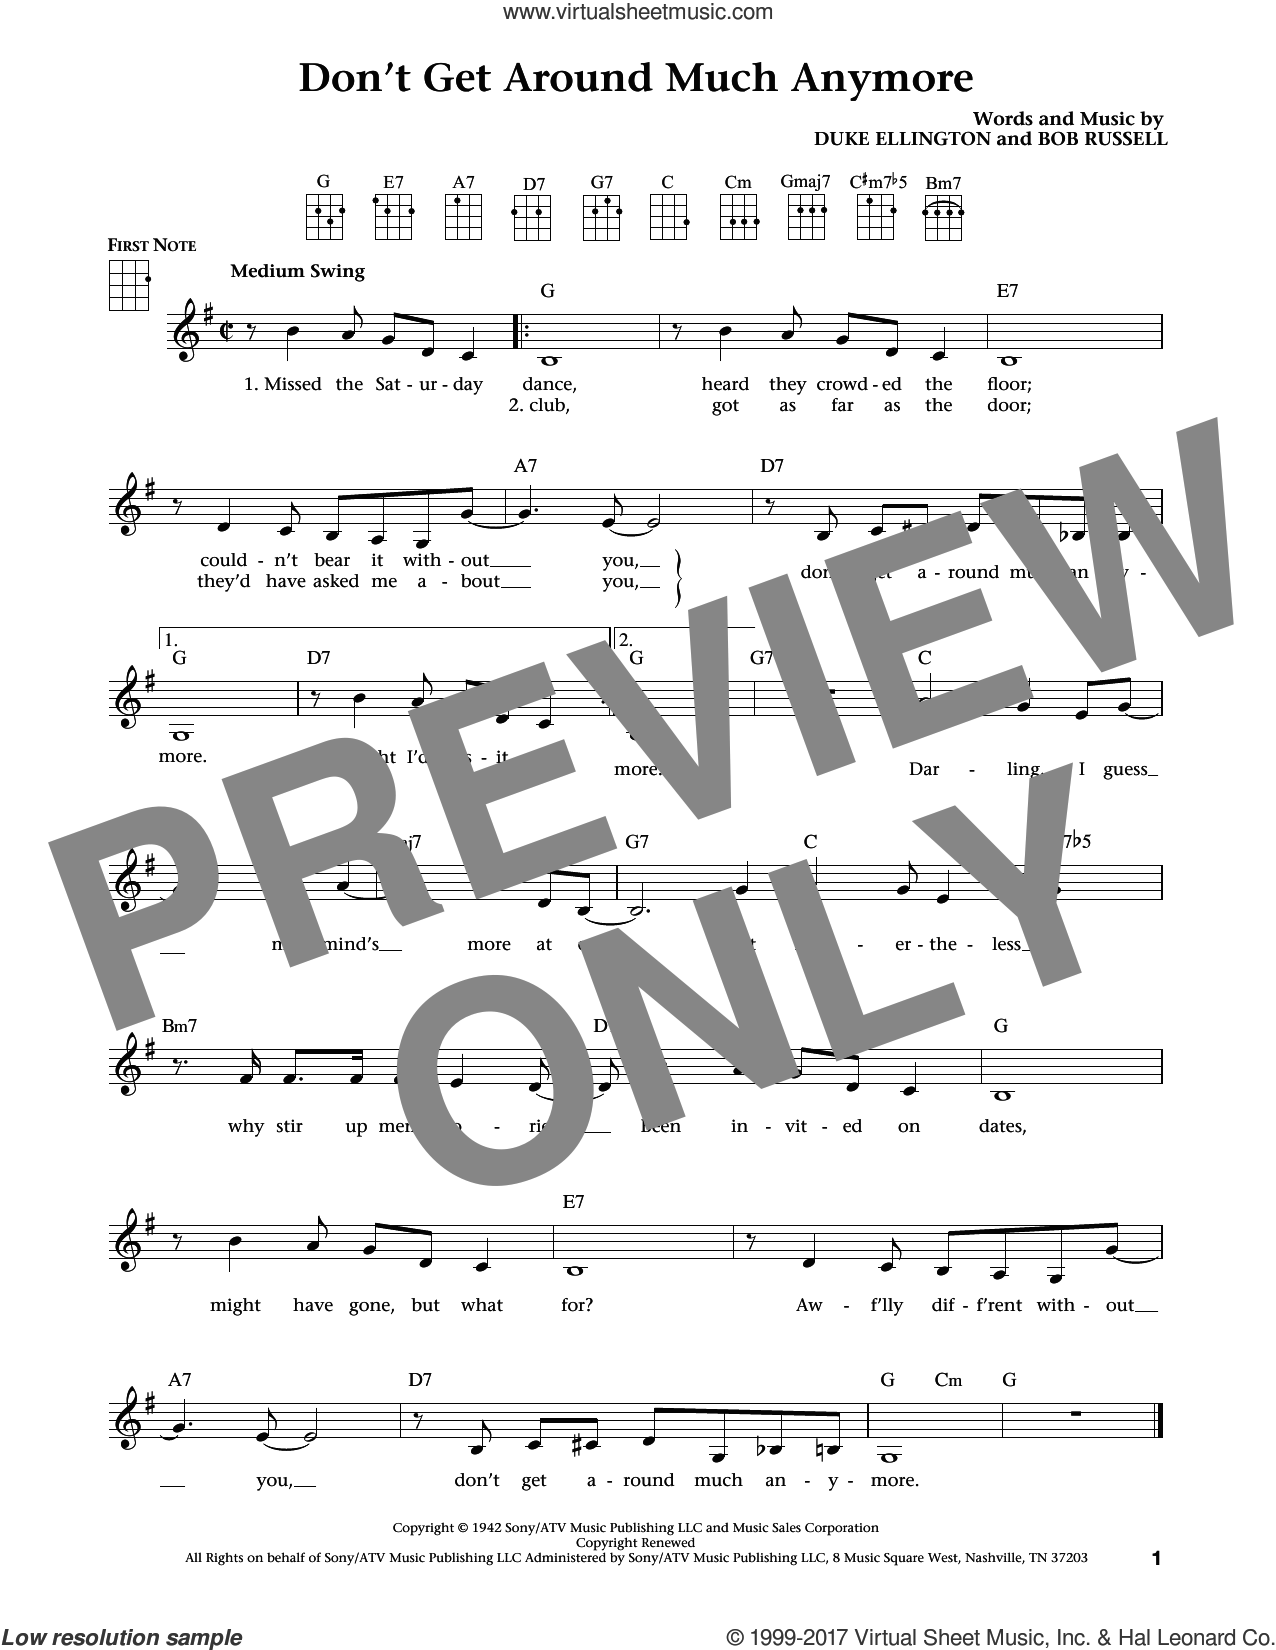 Don't Get Around Much Anymore (from The Daily Ukulele) (arr. Liz and Jim Beloff) sheet music for ukulele by Duke Ellington, Jim Beloff, Liz Beloff and Bob Russell, intermediate skill level